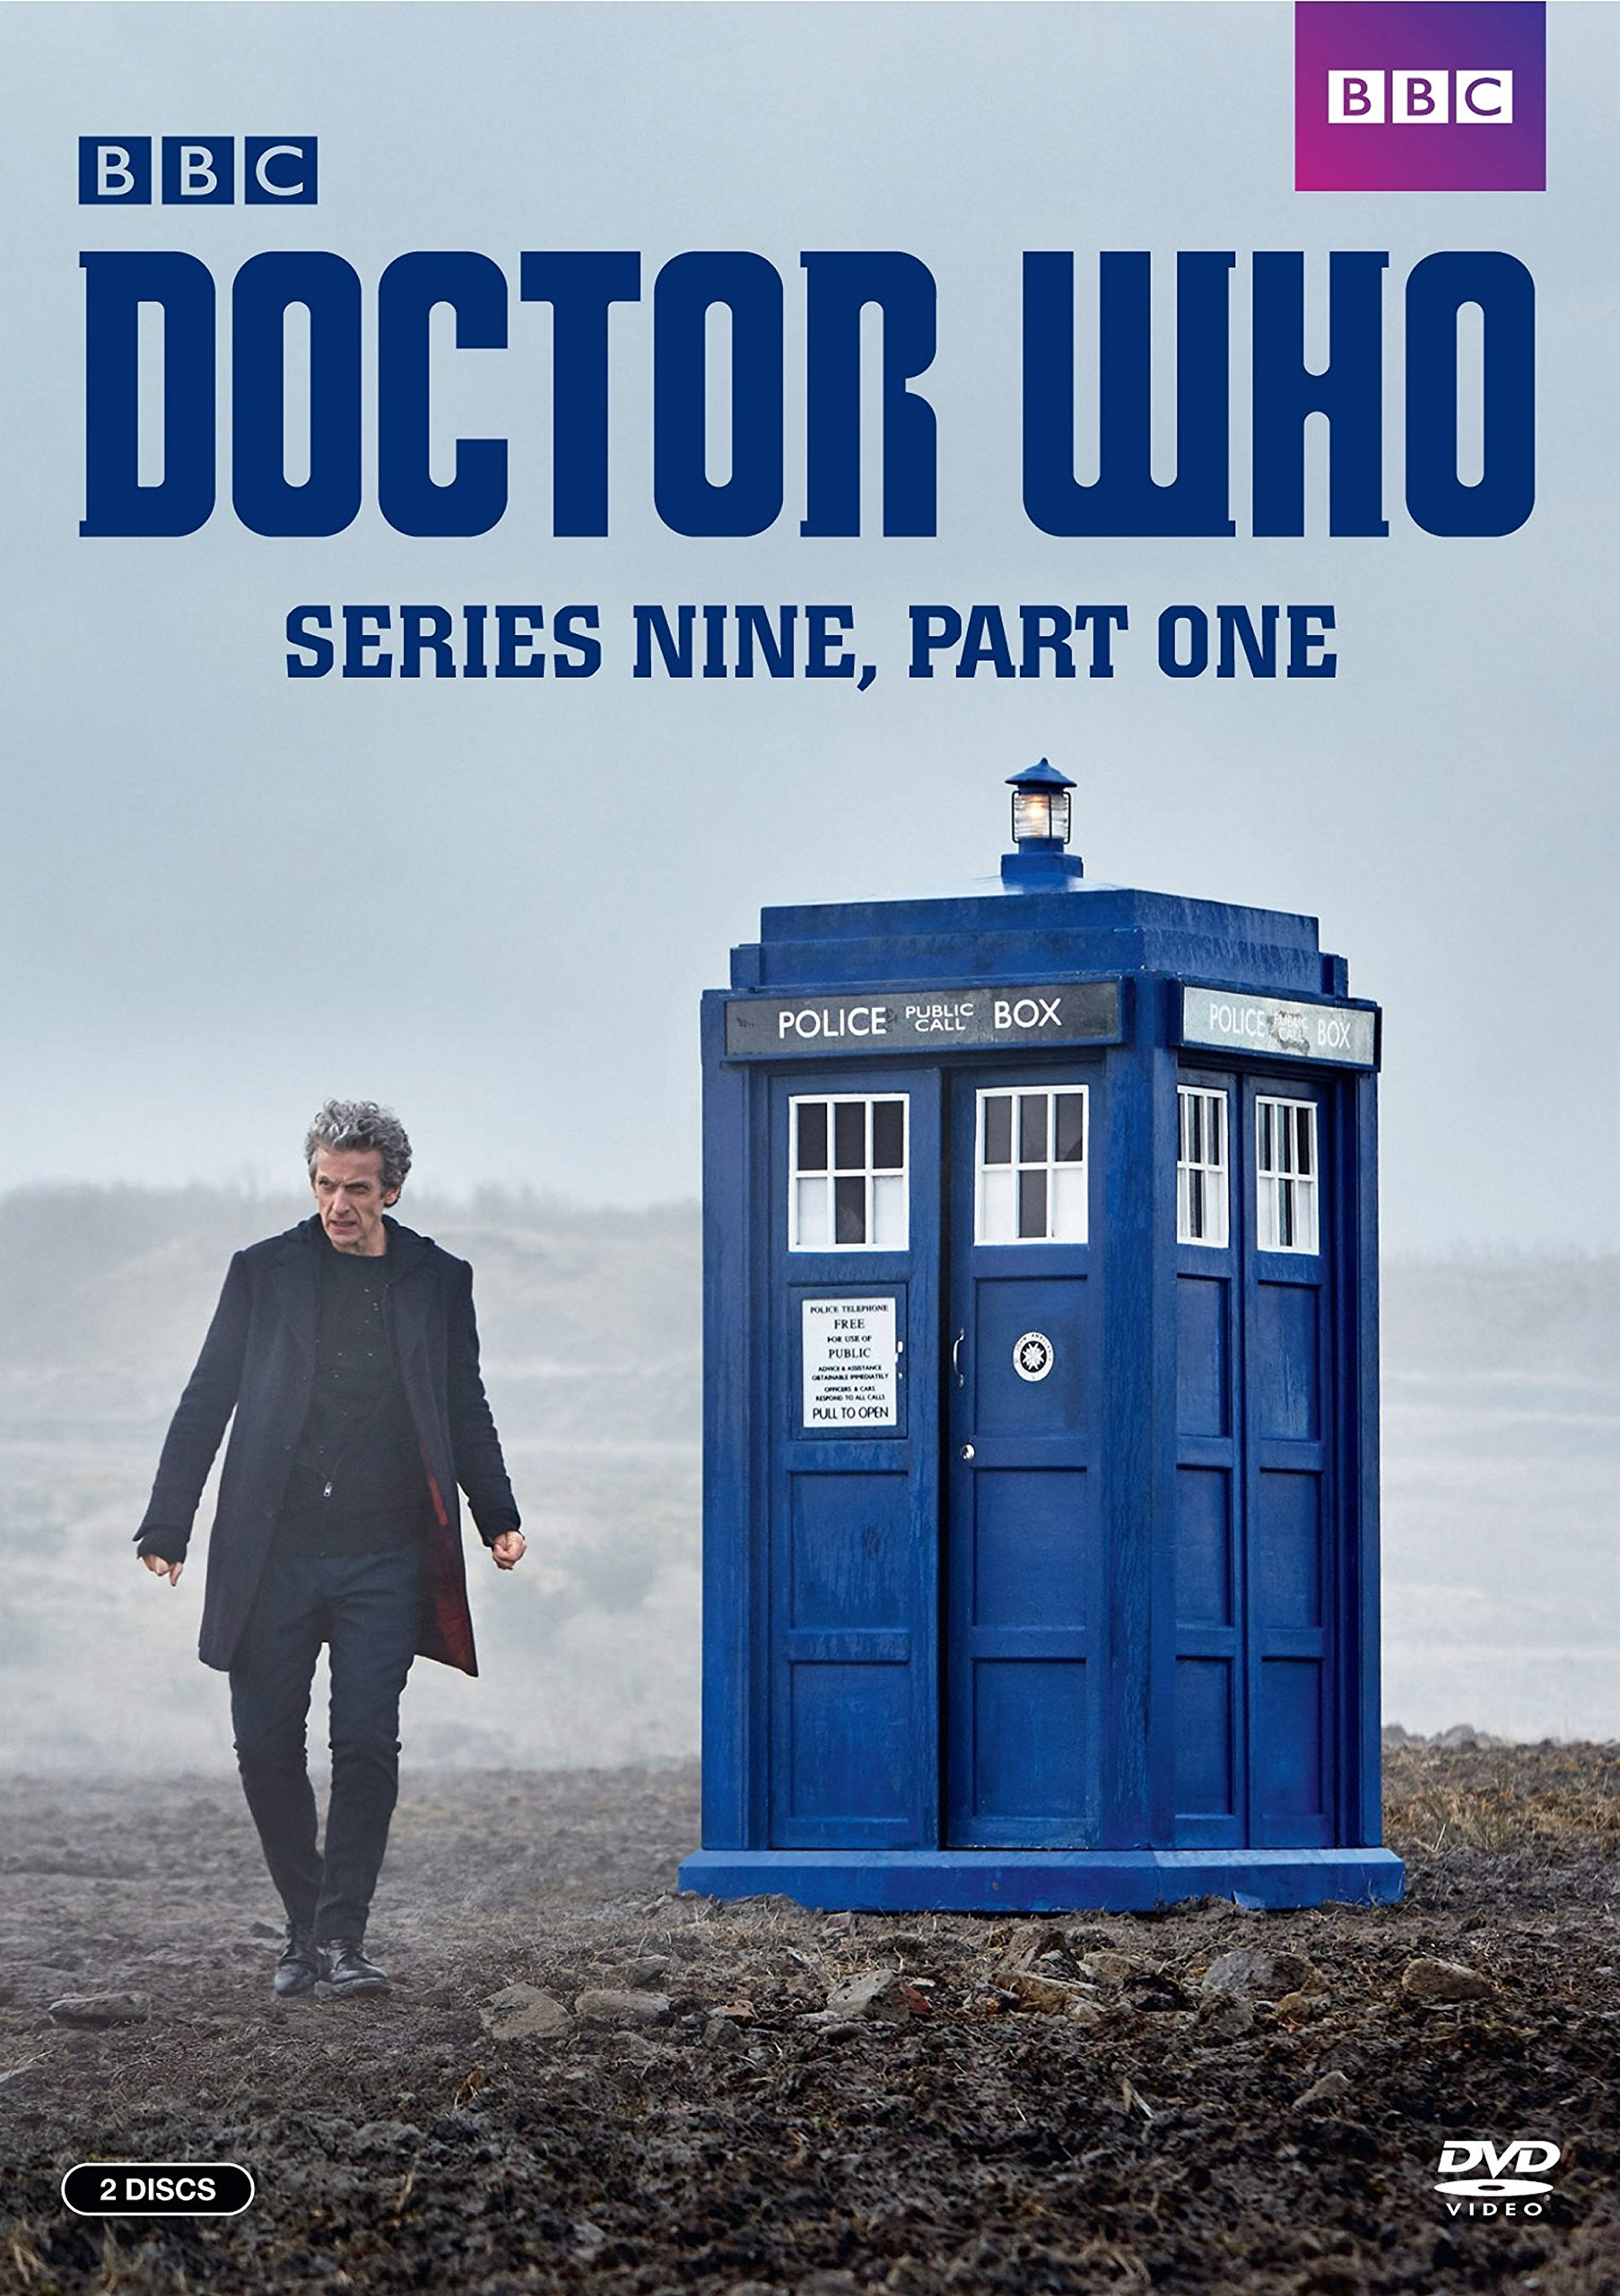 Doctor Who: Series 9 Part 1